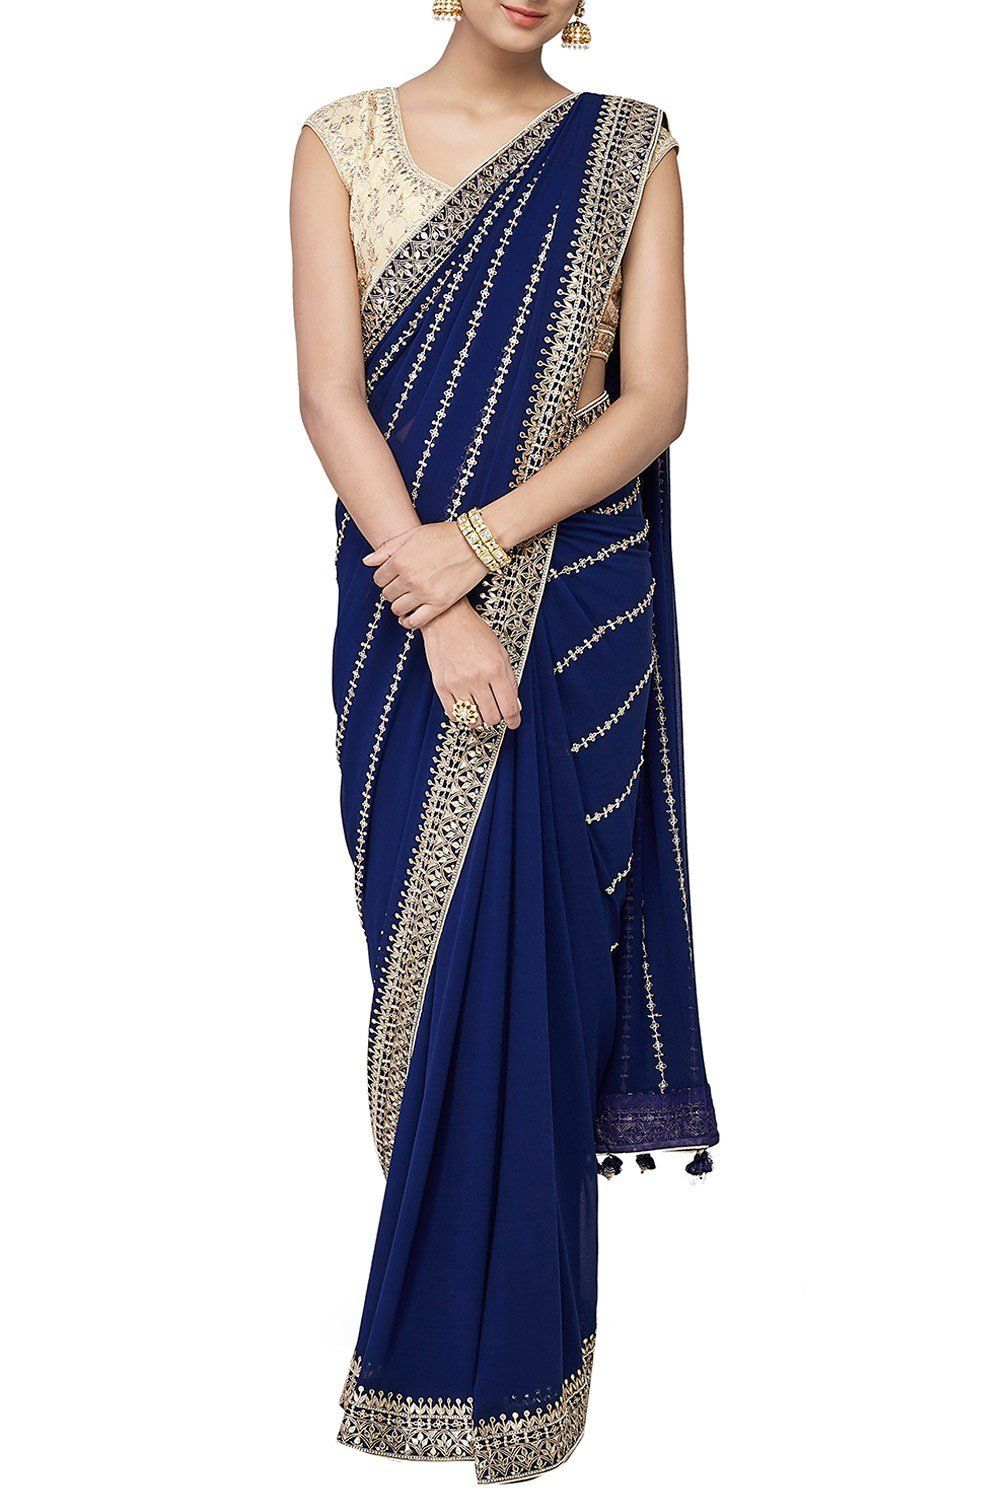 Navy blue saree with gotta patti and zari embroidery blue saree